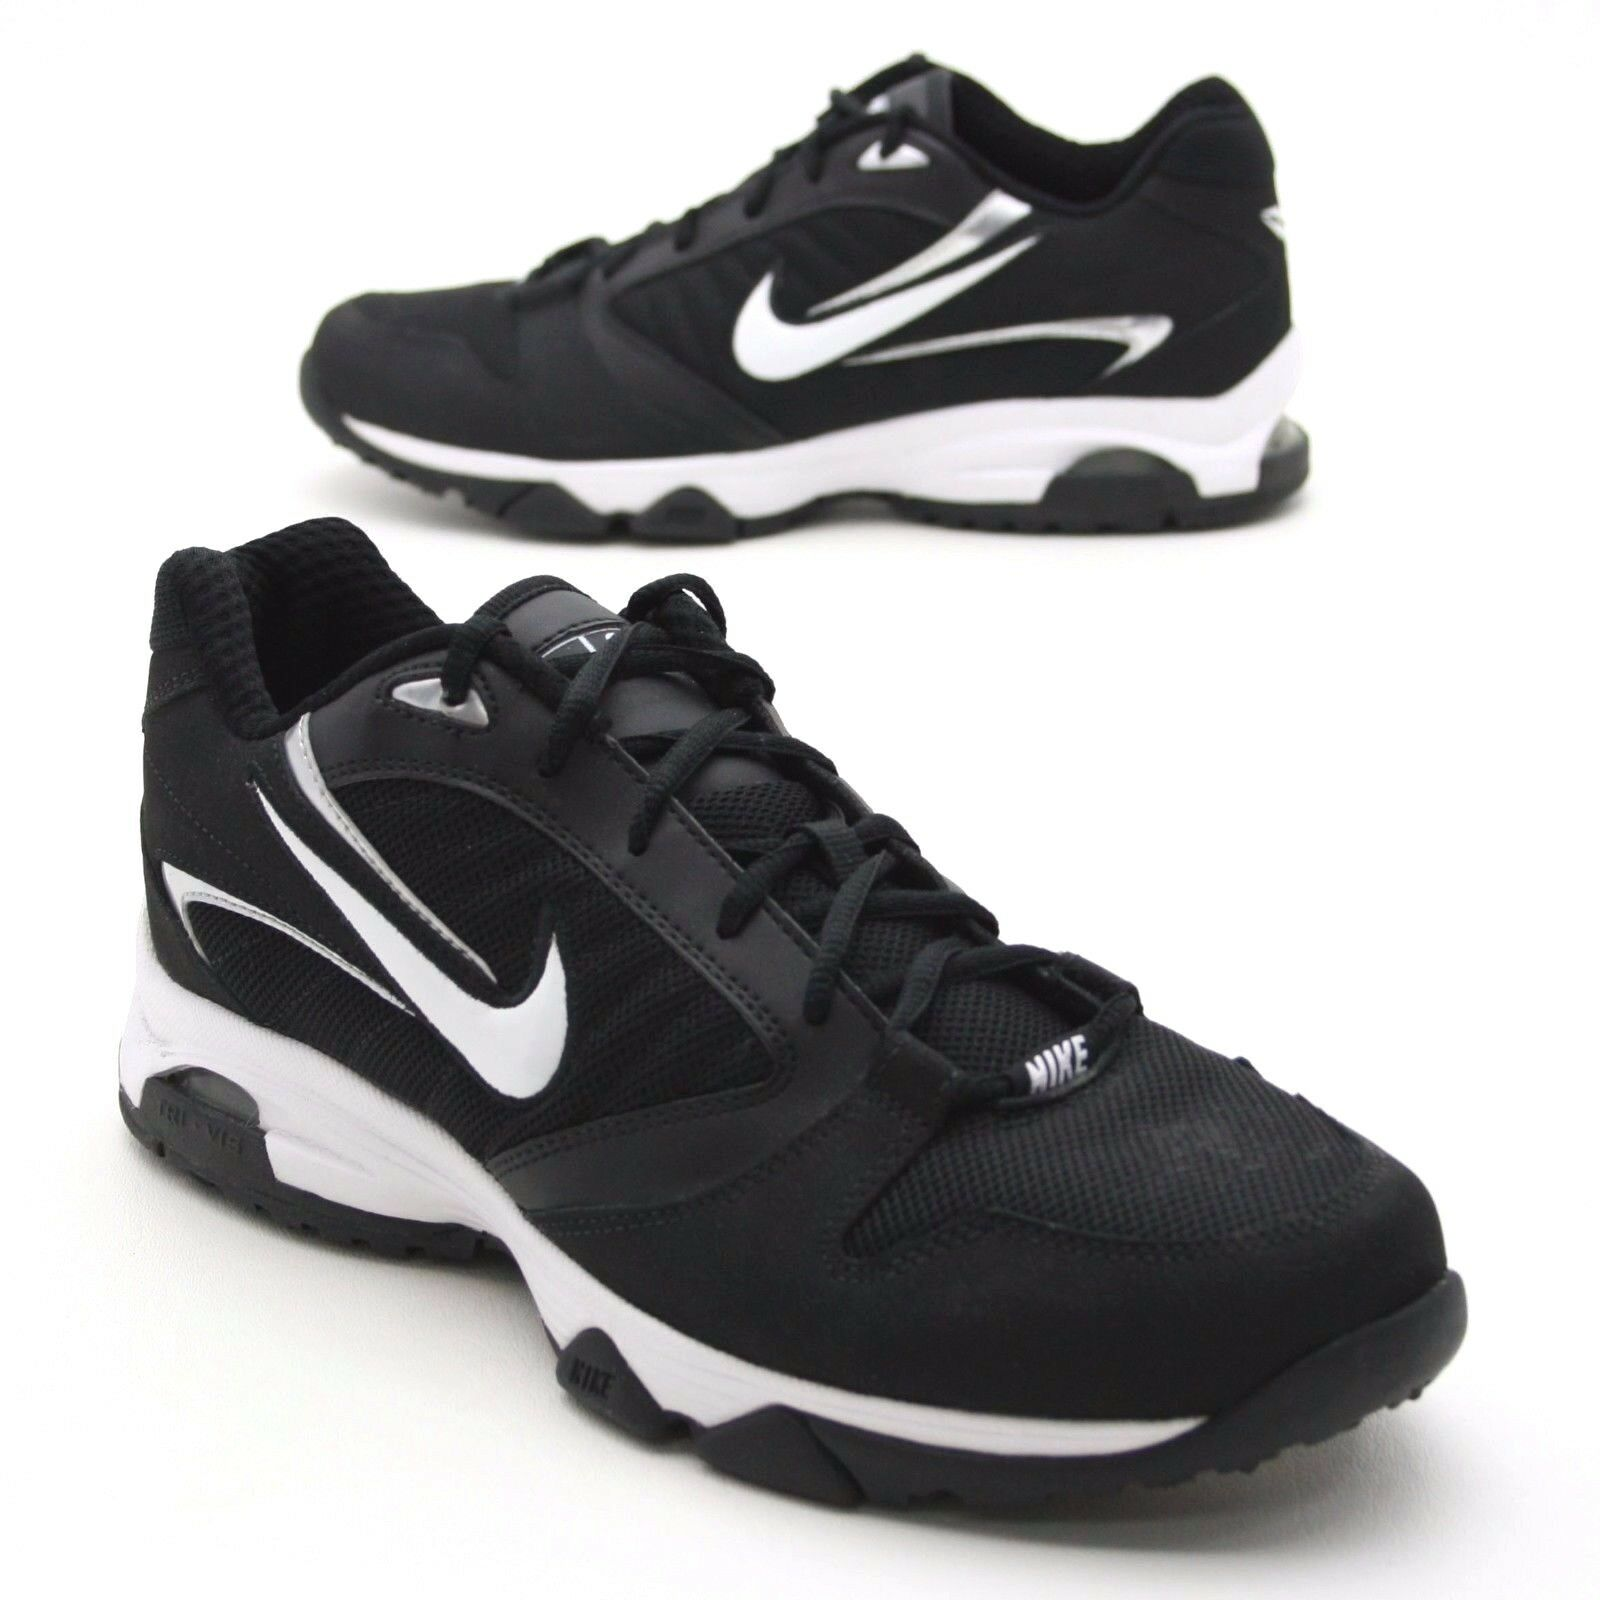 big sale a1734 48c9d ... discount nike speed xt hombre 10 running zapatos blanco lace up negro  blanco zapatos training zapatillas